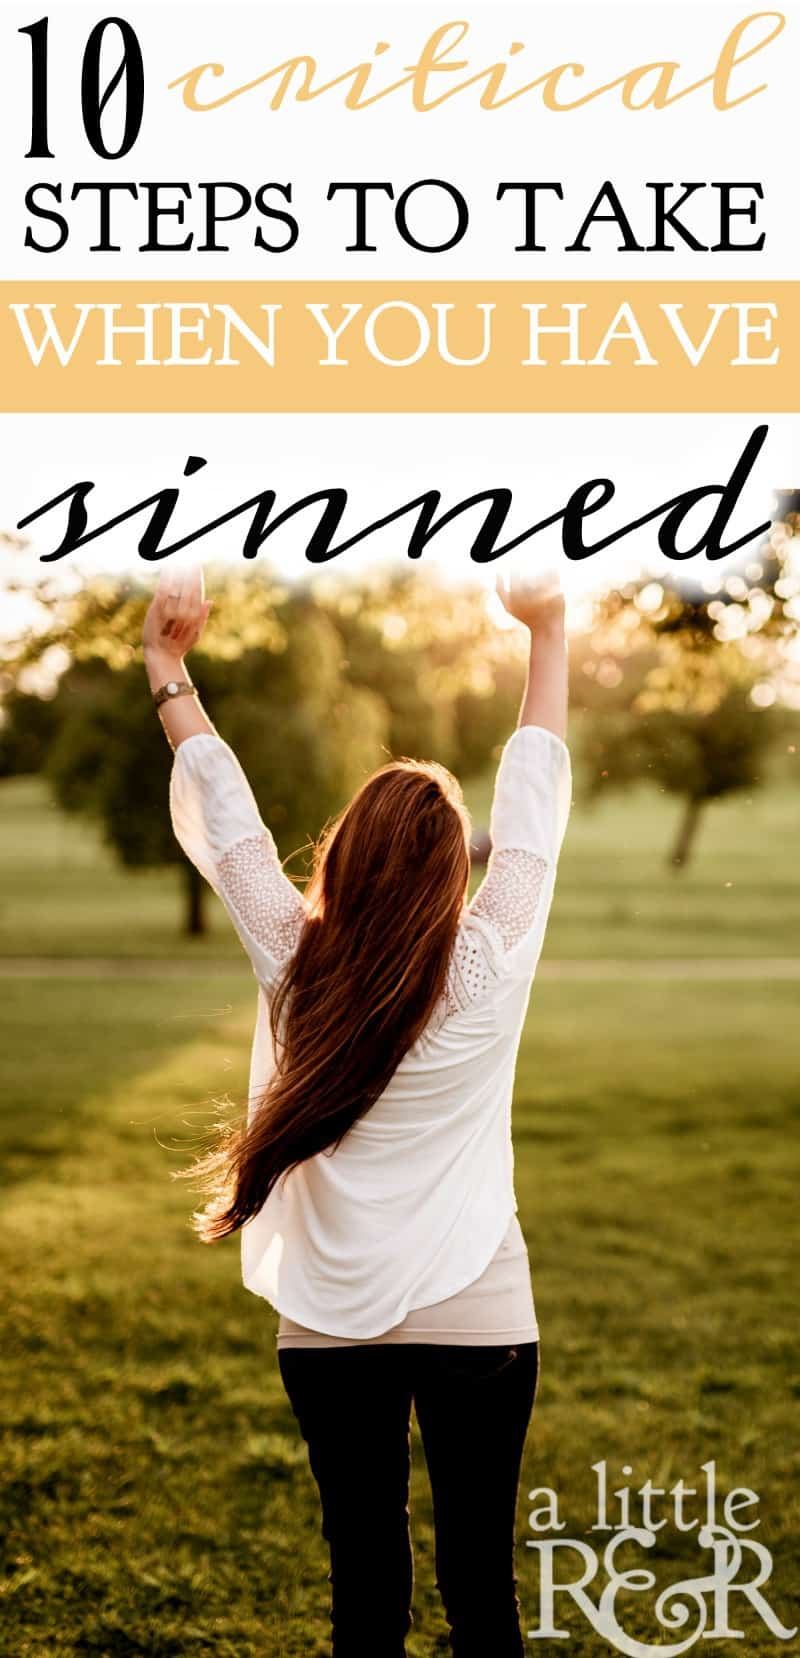 10 Critical Steps to Take When You Have Sinned | In Psalms 38-40 we see ten steps David took after he had sinned against the Lord and how they apply to us. | A Little R & R | Rosilind Jukić | Christianity | Christian living | Christian blog | Christian faith | Sin| Repentence | Psalms | Online Bible Study  #repentence #sin #onlinebiblestudy #Bible #Christianliving #Christian #Jesus #warroom #spiritualwarfare